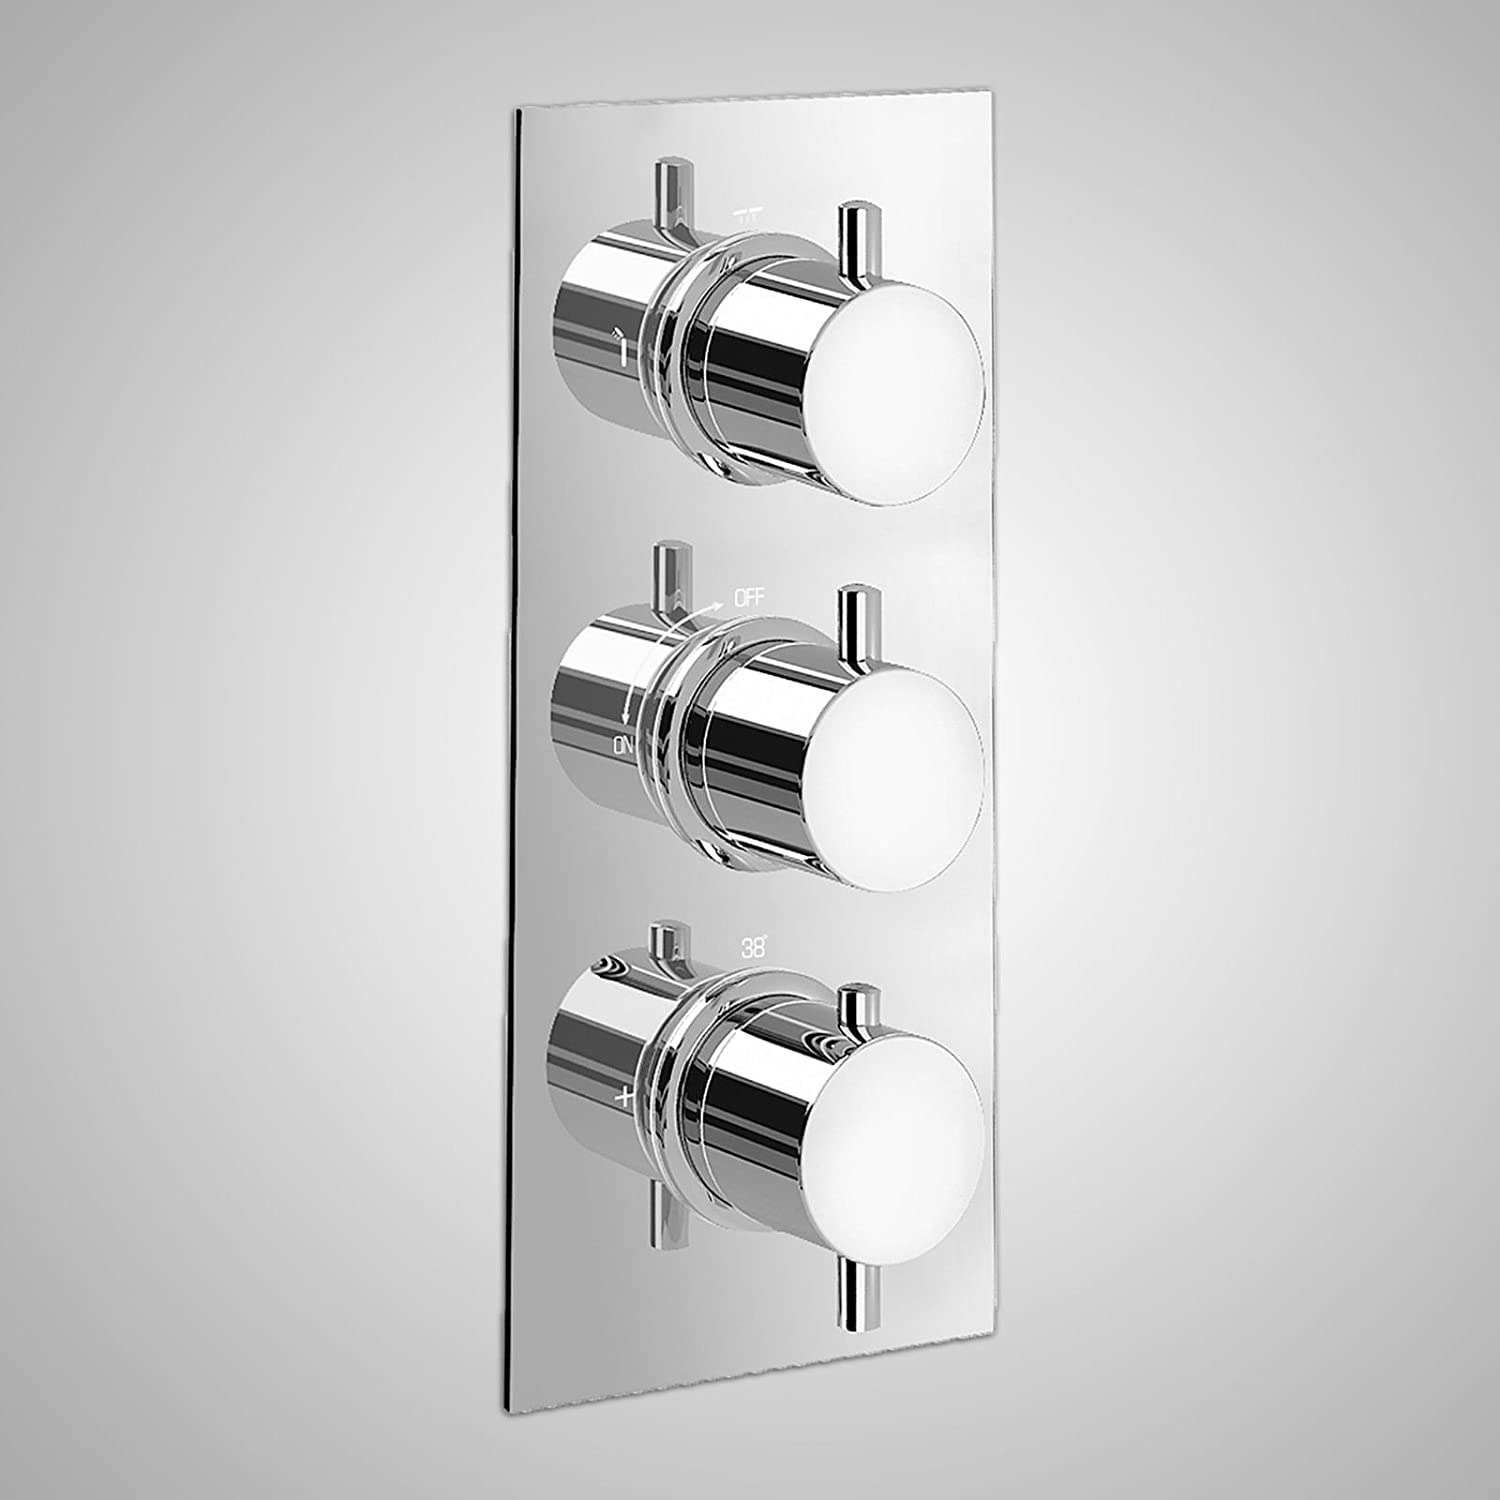 BATHROOM 3 DIAL 3 WAY ROUND THERMOSTATIC SHOWER MIXER VALVE, SHOWER ...